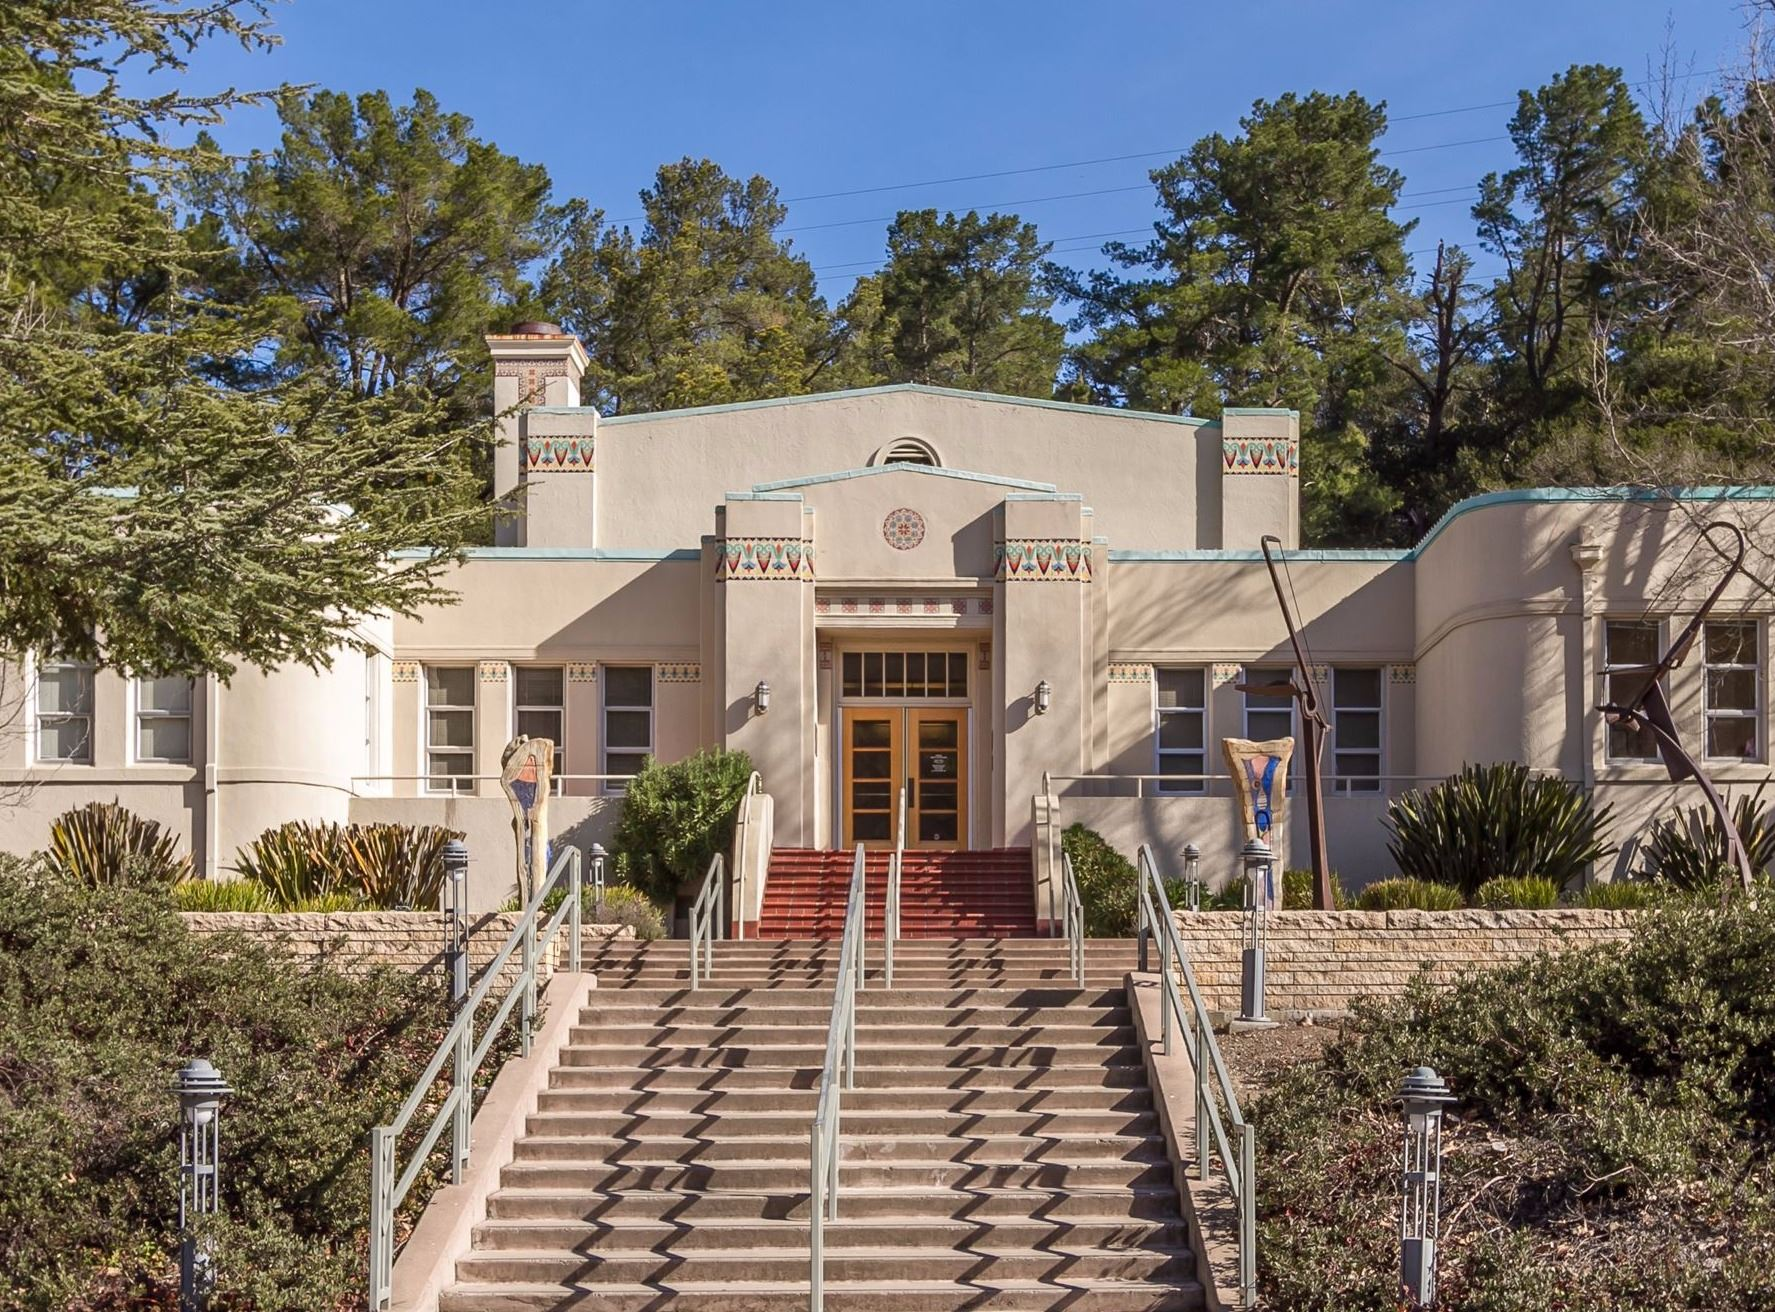 Orinda Community Center